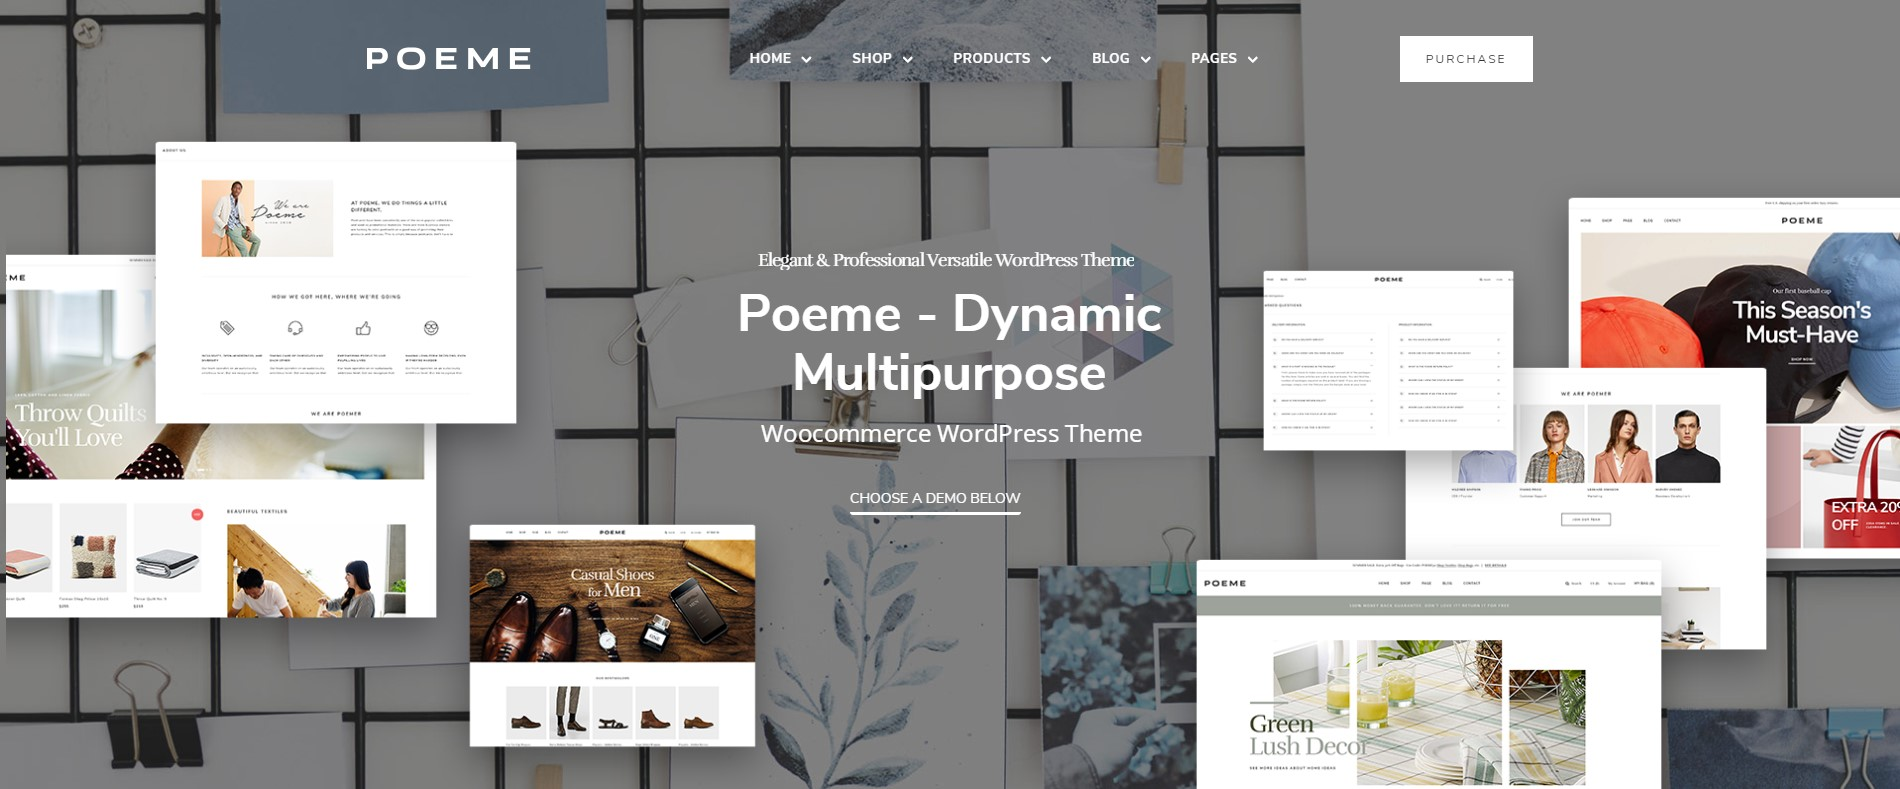 Poeme - Dynamic Multipurpose WooCommerce WordPress Theme